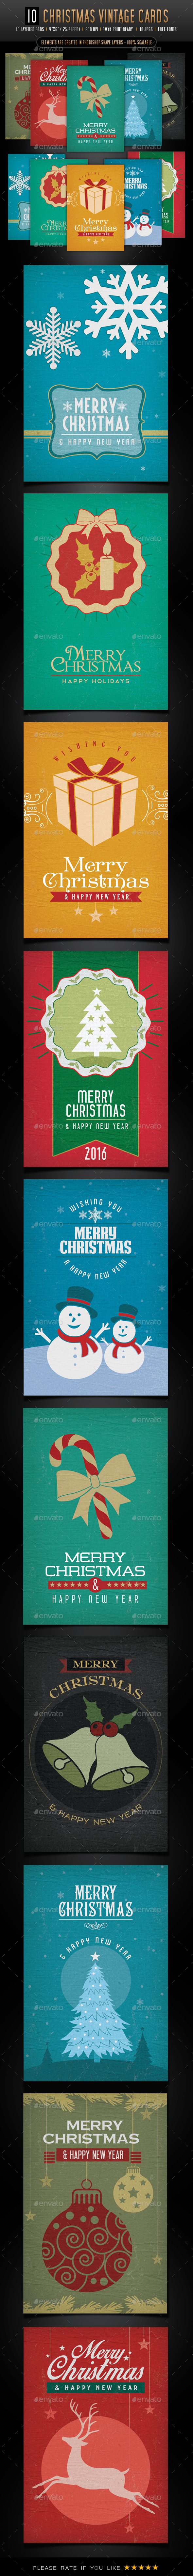 10 Christmas Vintage Cards - Backgrounds - Backgrounds Graphics